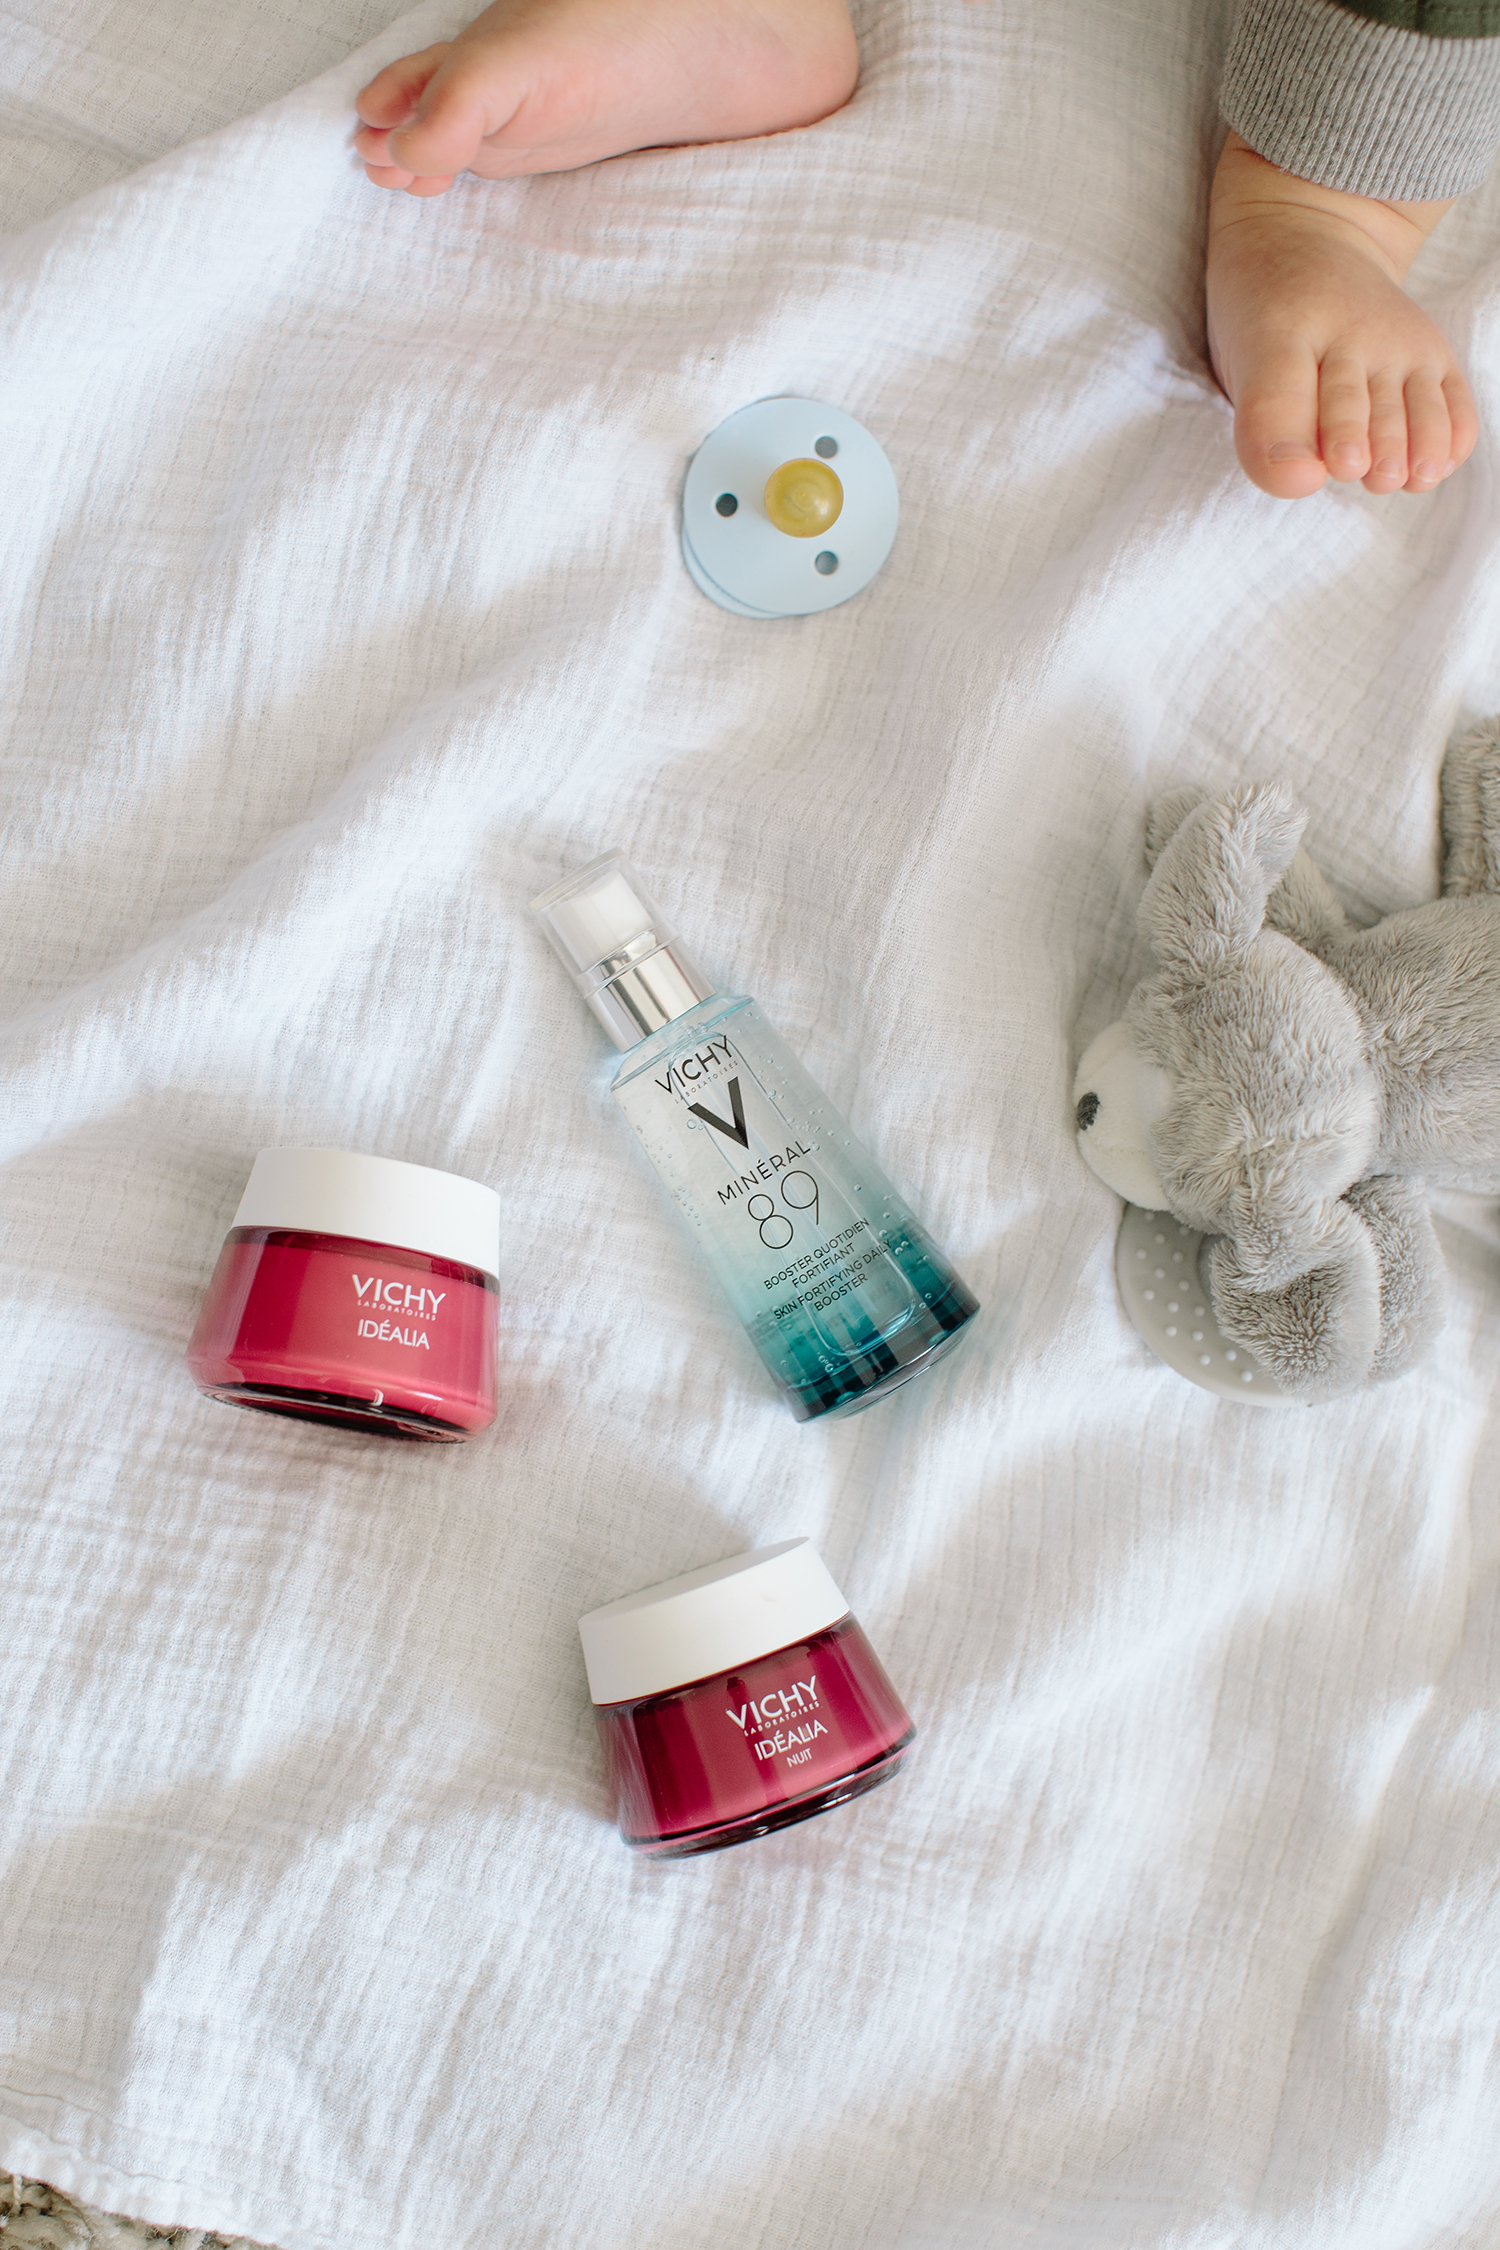 vichy-mommy-moments-with-idealia-5.jpg